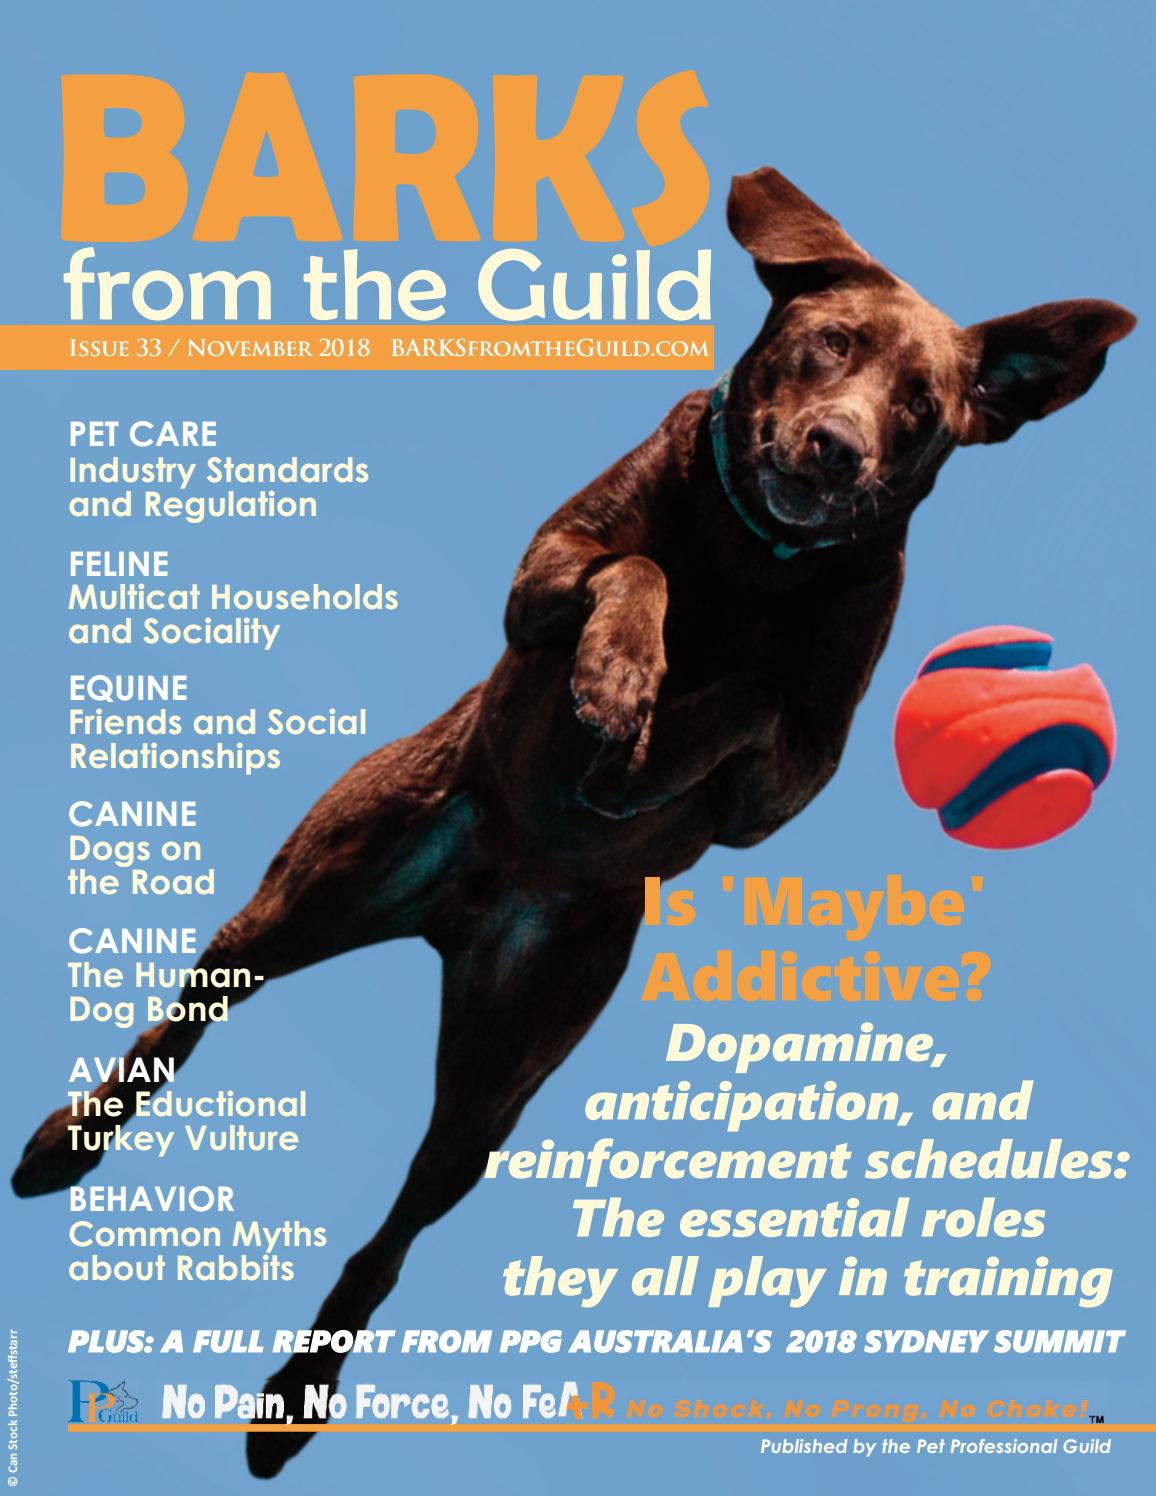 BARKS from the Guild November 2018 by The Pet Professional